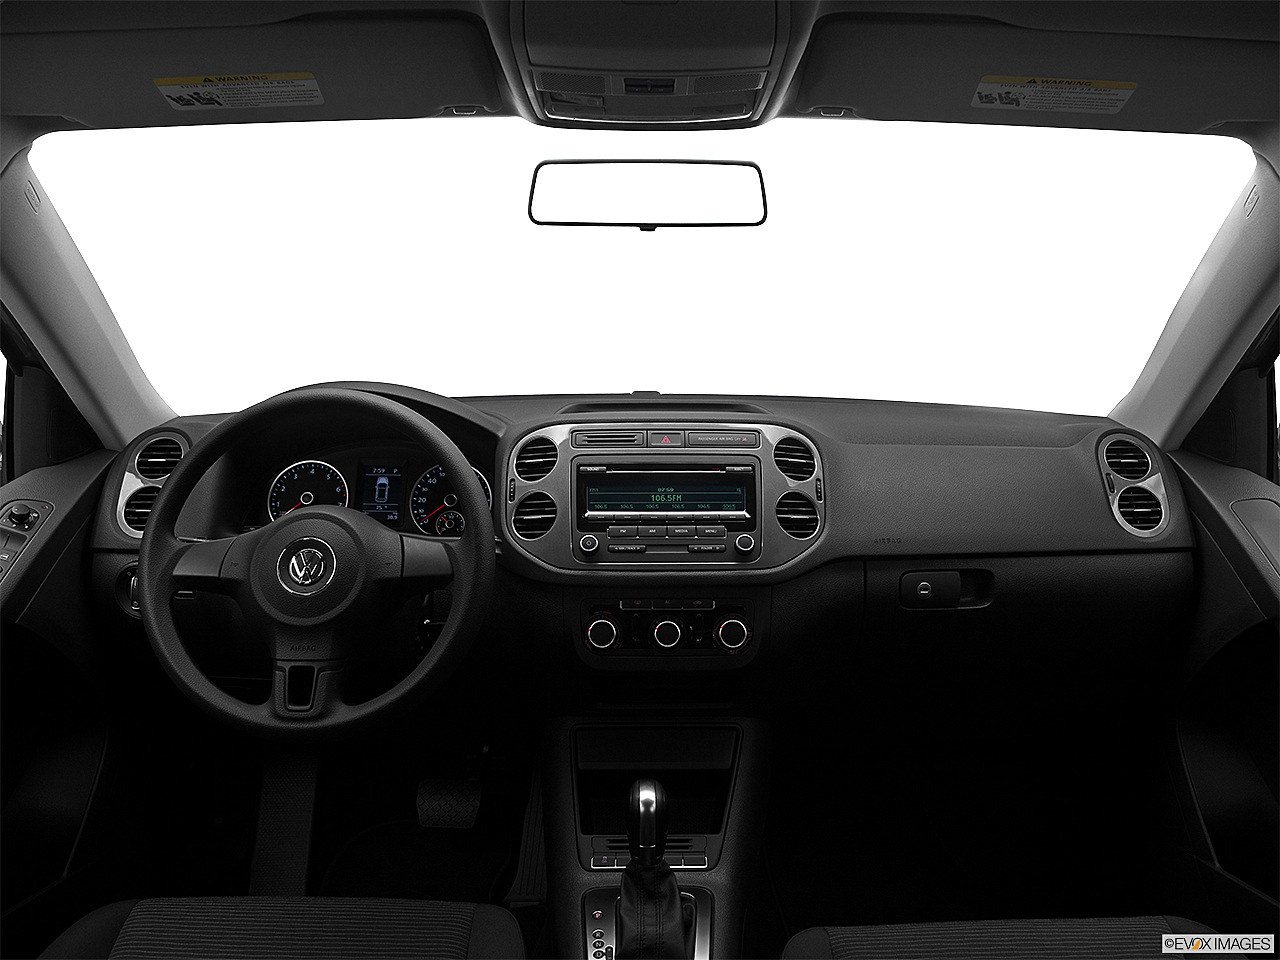 2012 Volkswagen Tiguan S, centered wide dash shot